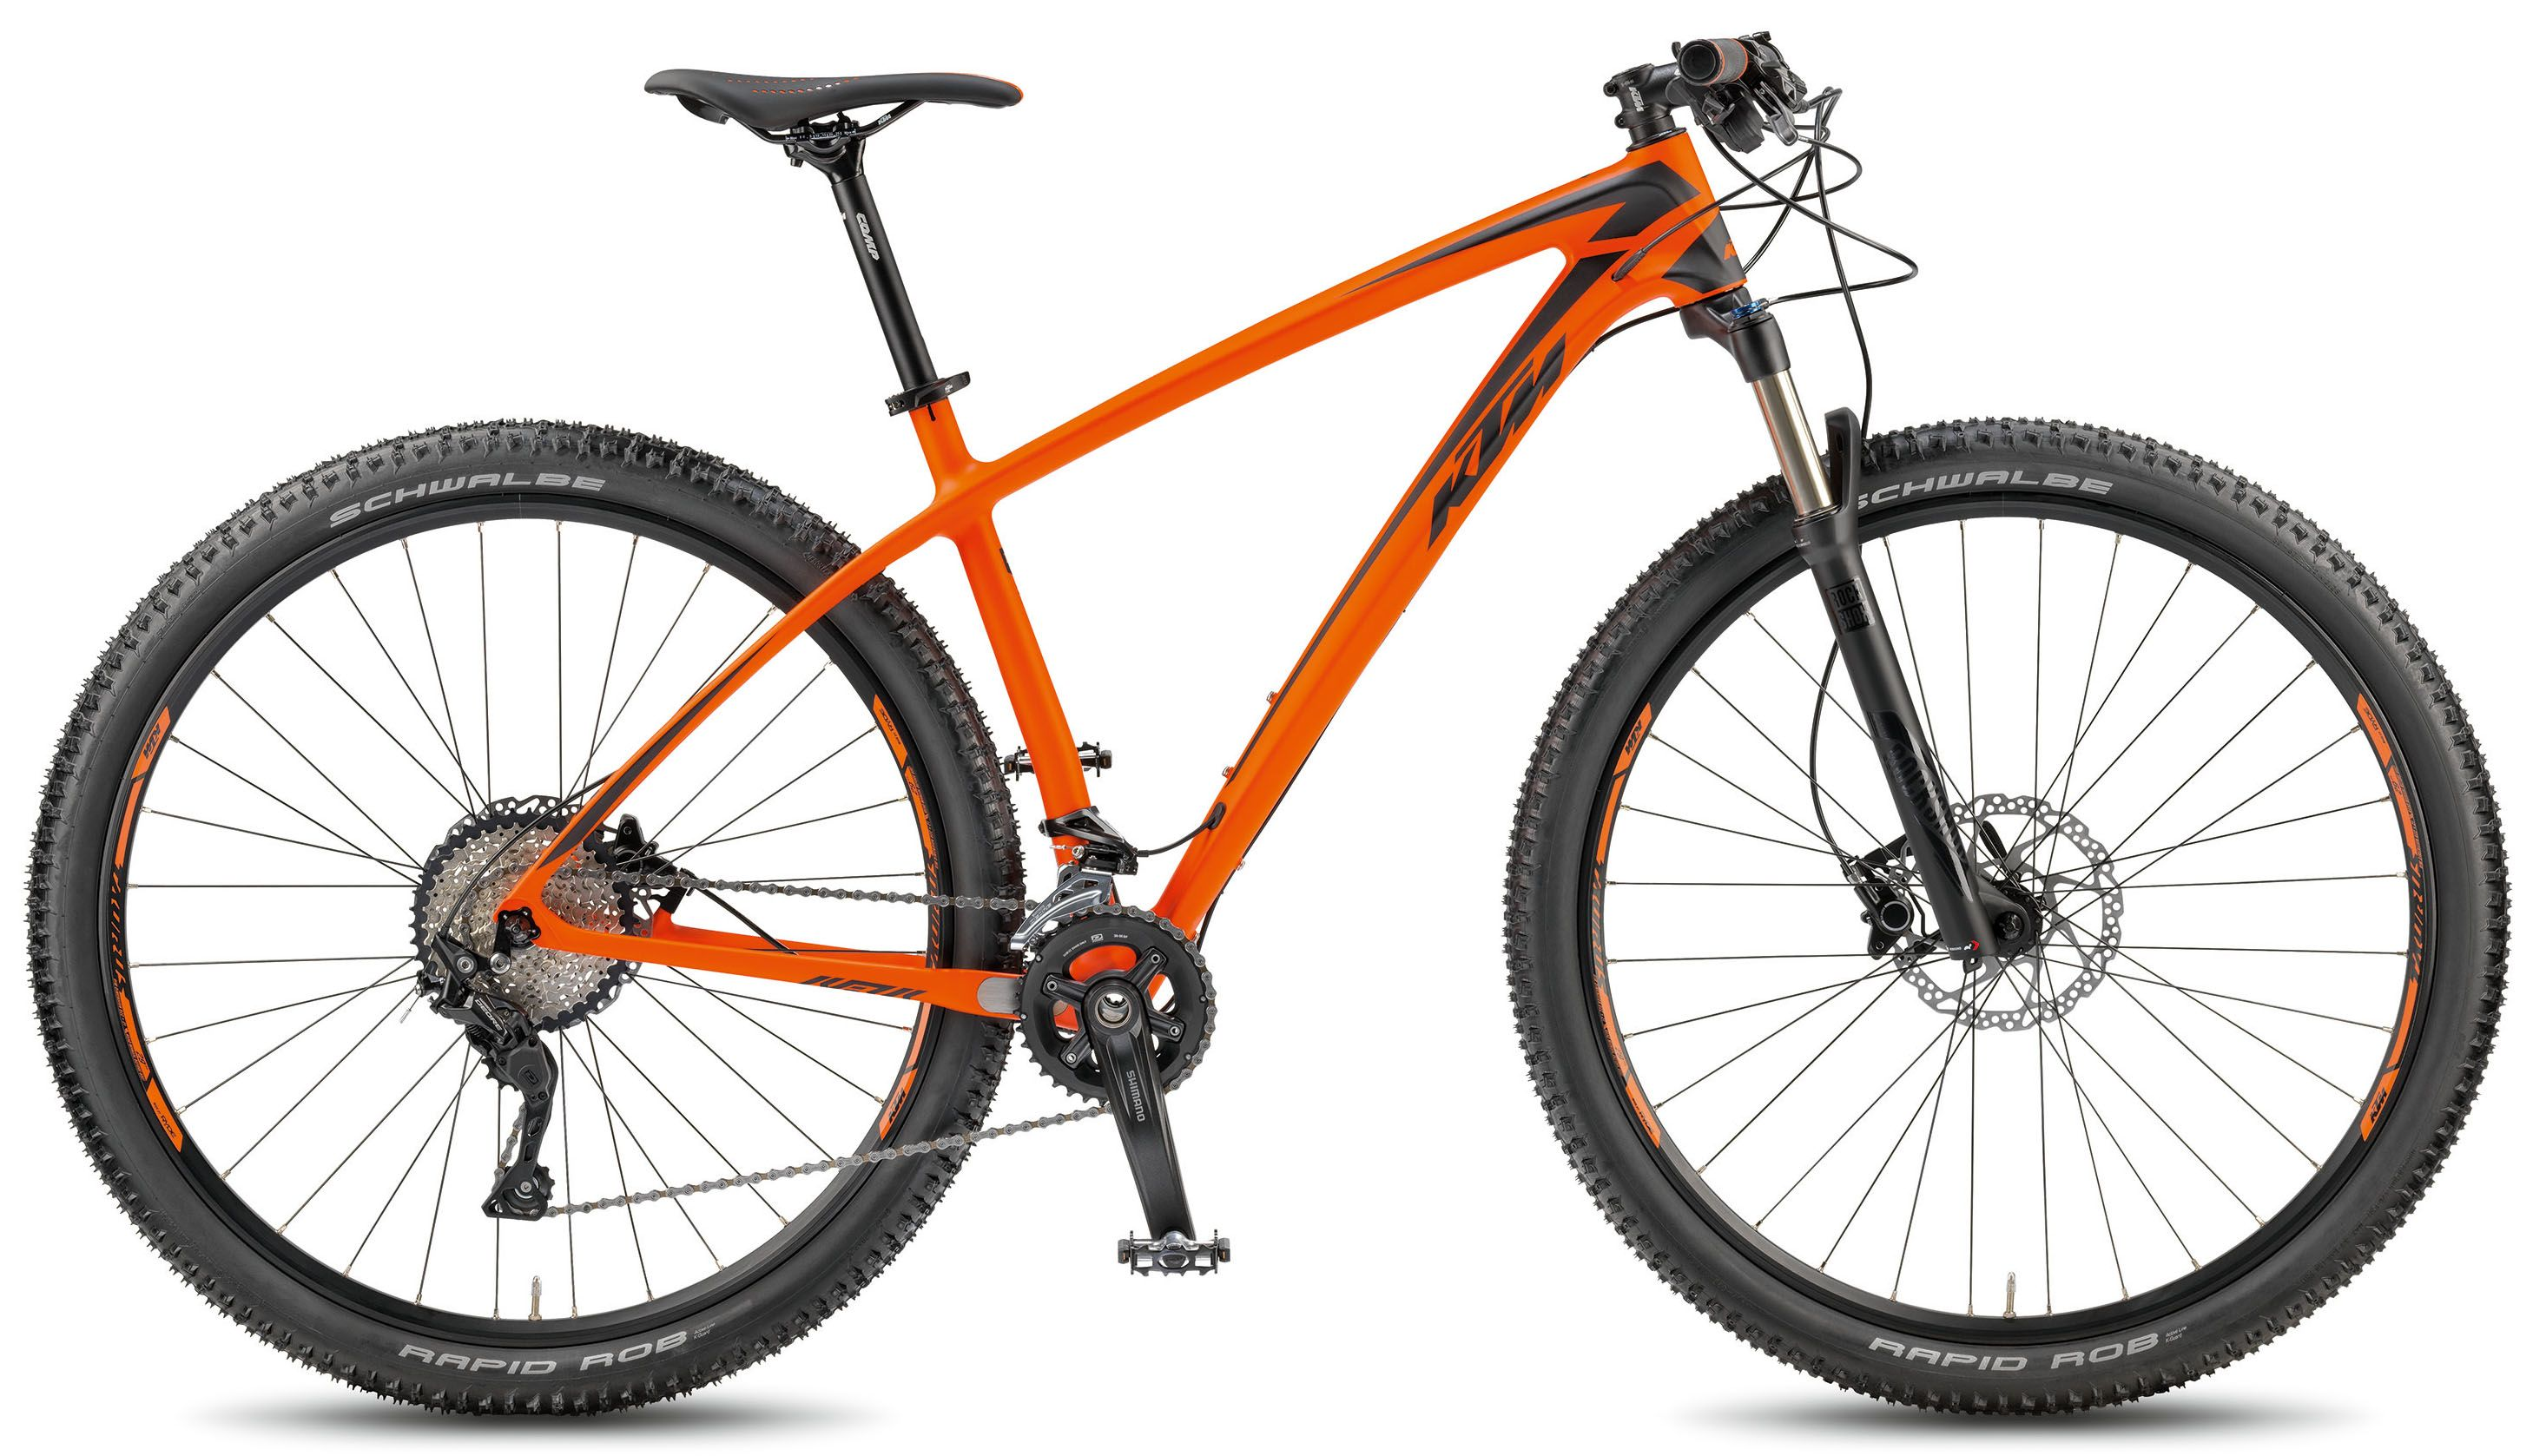 Велосипед KTM Aera Comp 20 2018 бицепс машина impulse it9503 295